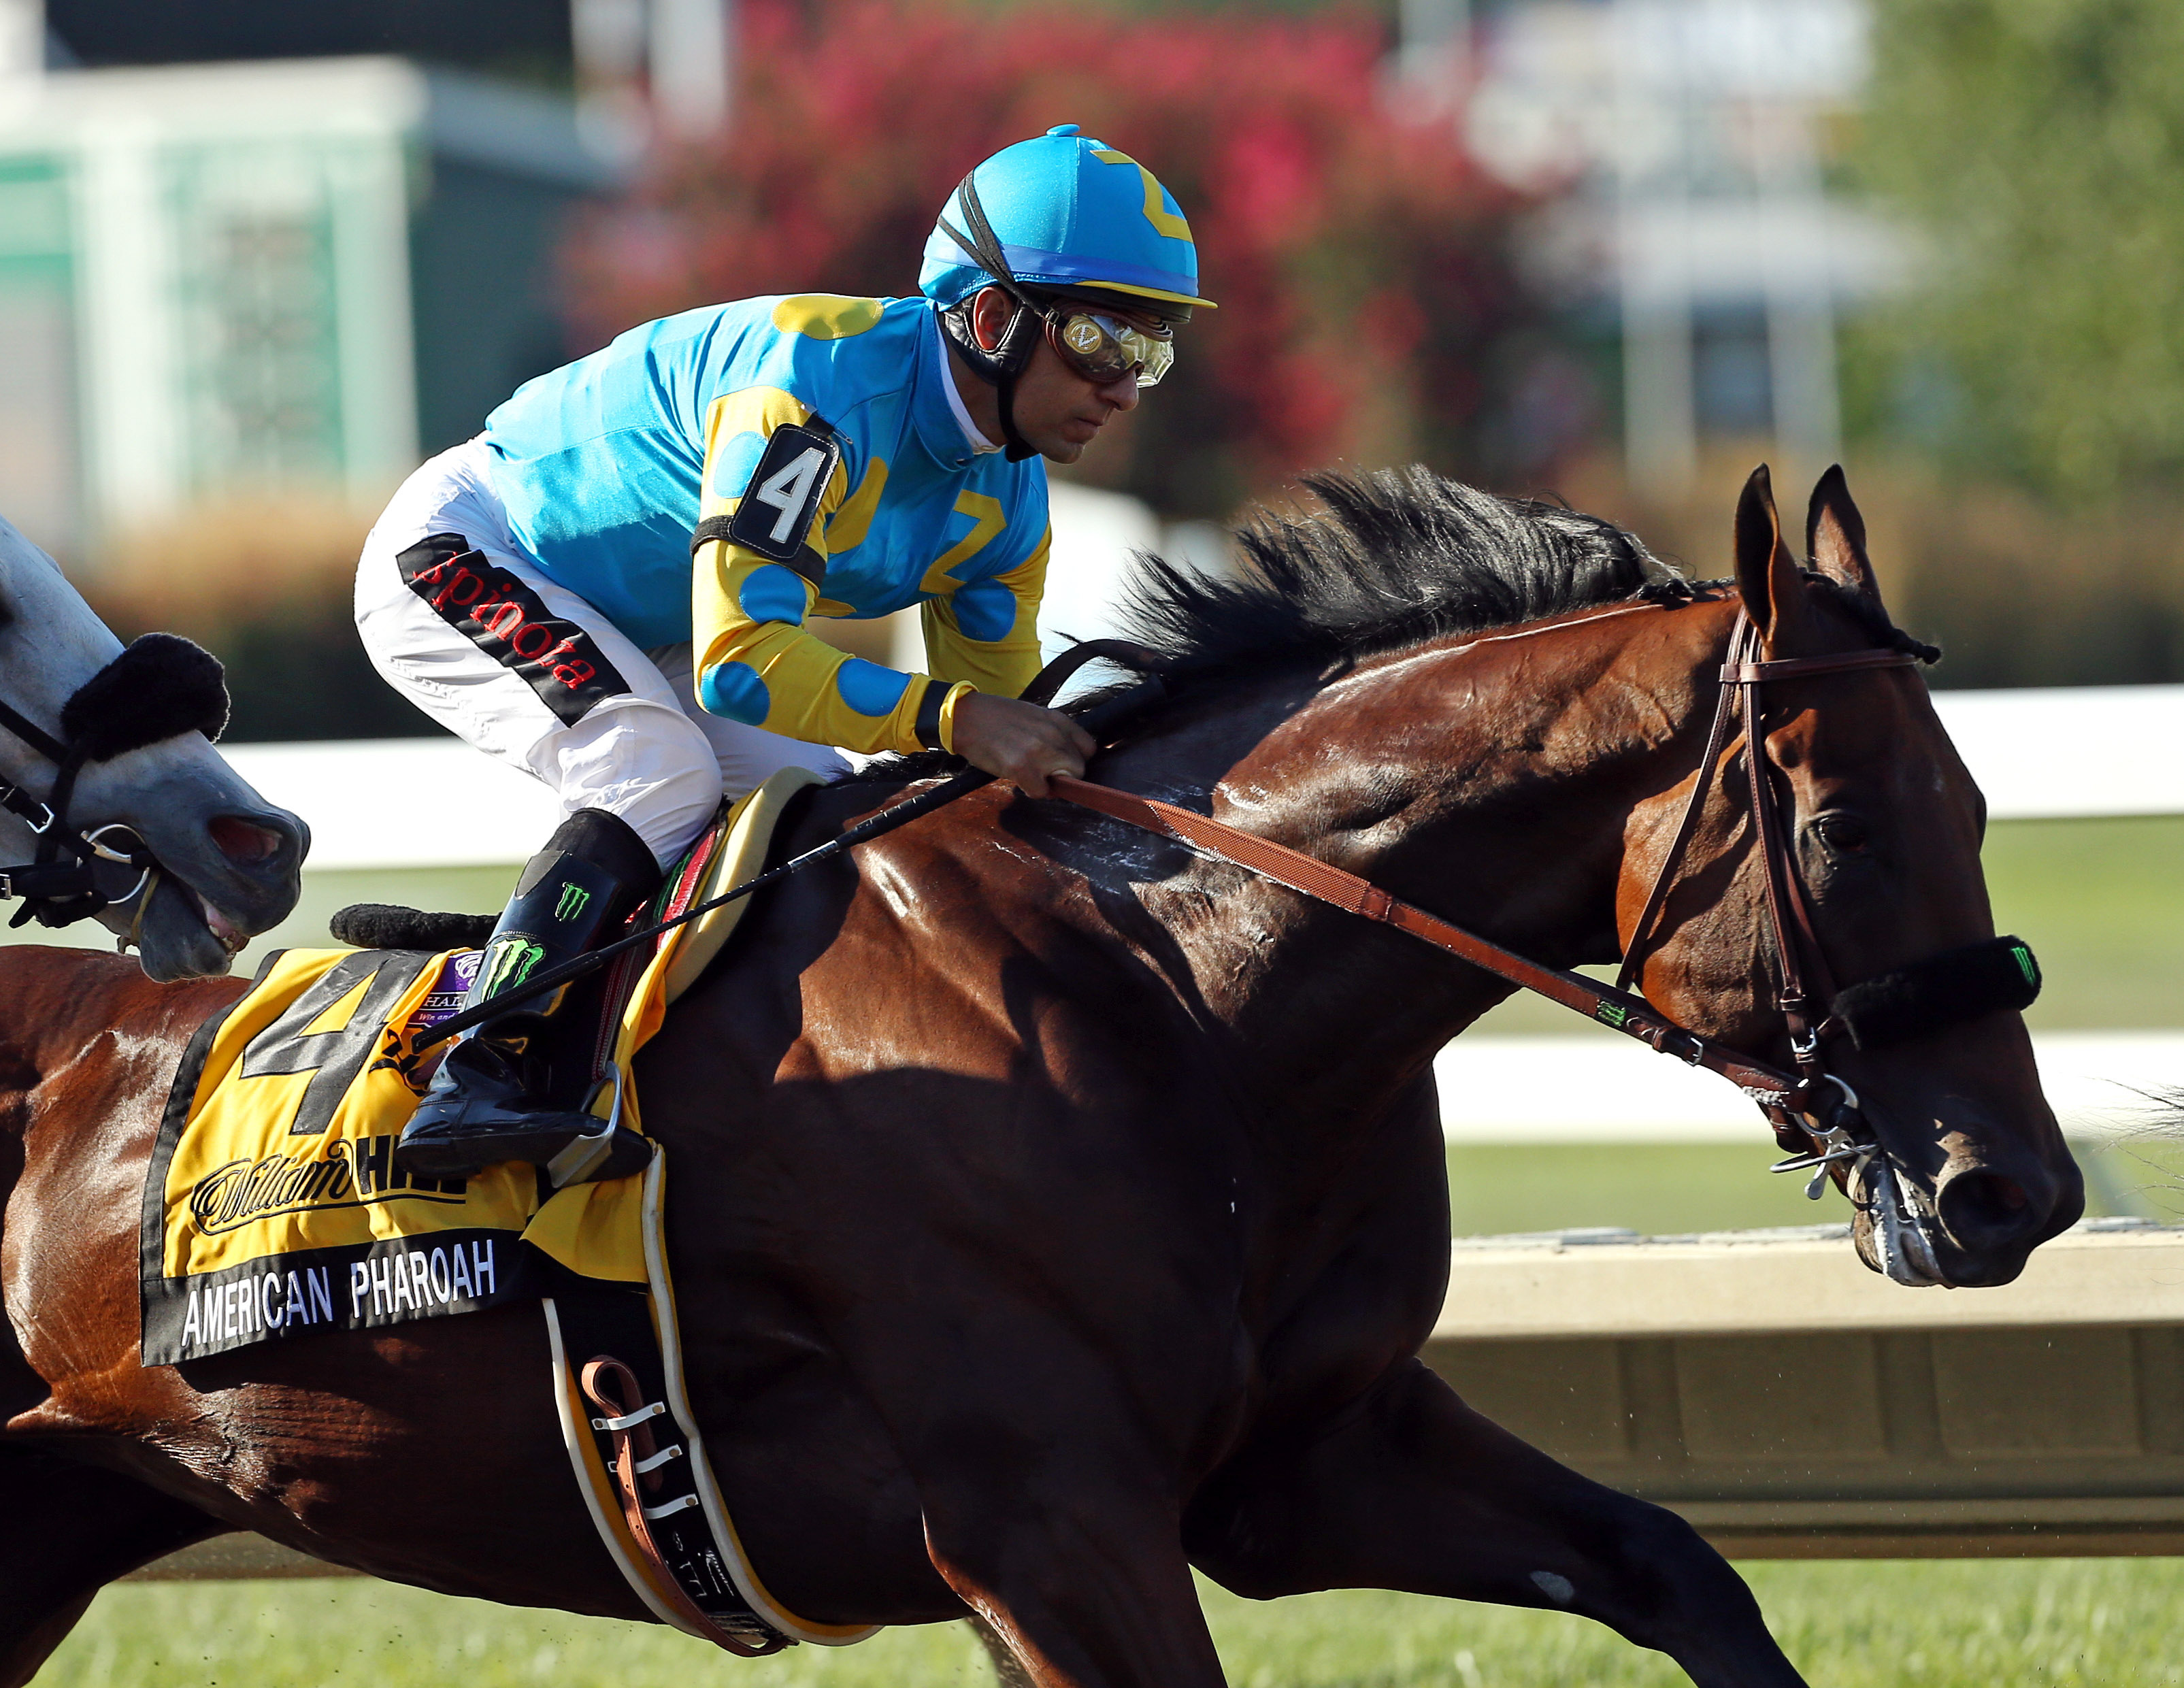 American Pharoah, who won the Triple Crown earlier this year, made the Forward 50 in November. (Photo by Adam Hunger/Getty Images)